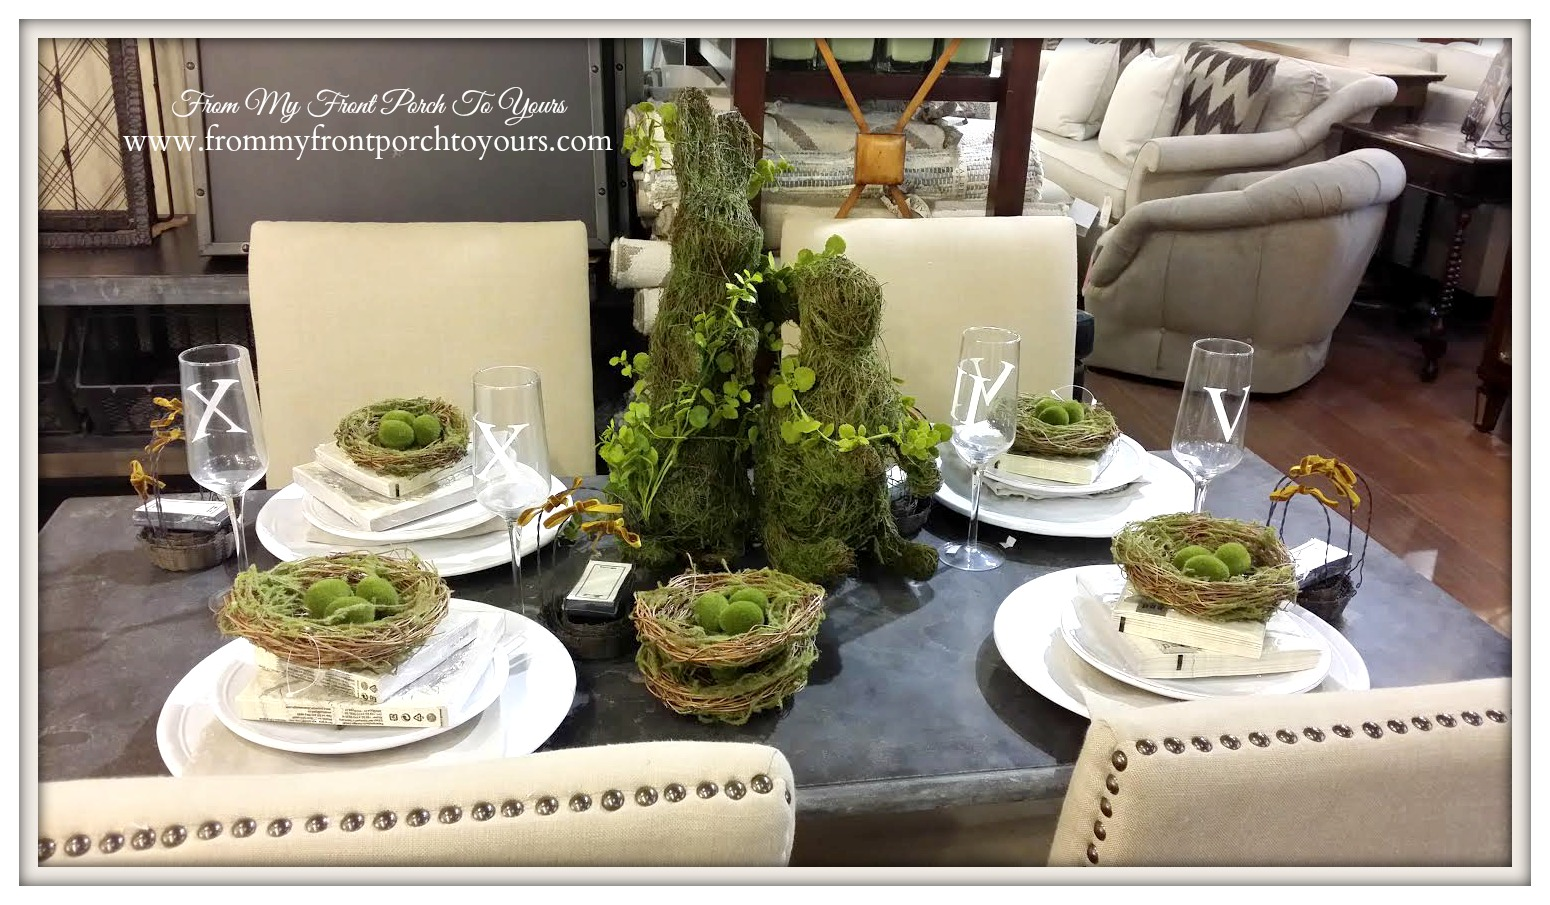 Spring Tablesetting with Nests-Laurie's Home Furnishings- From My Front Porch To Yours